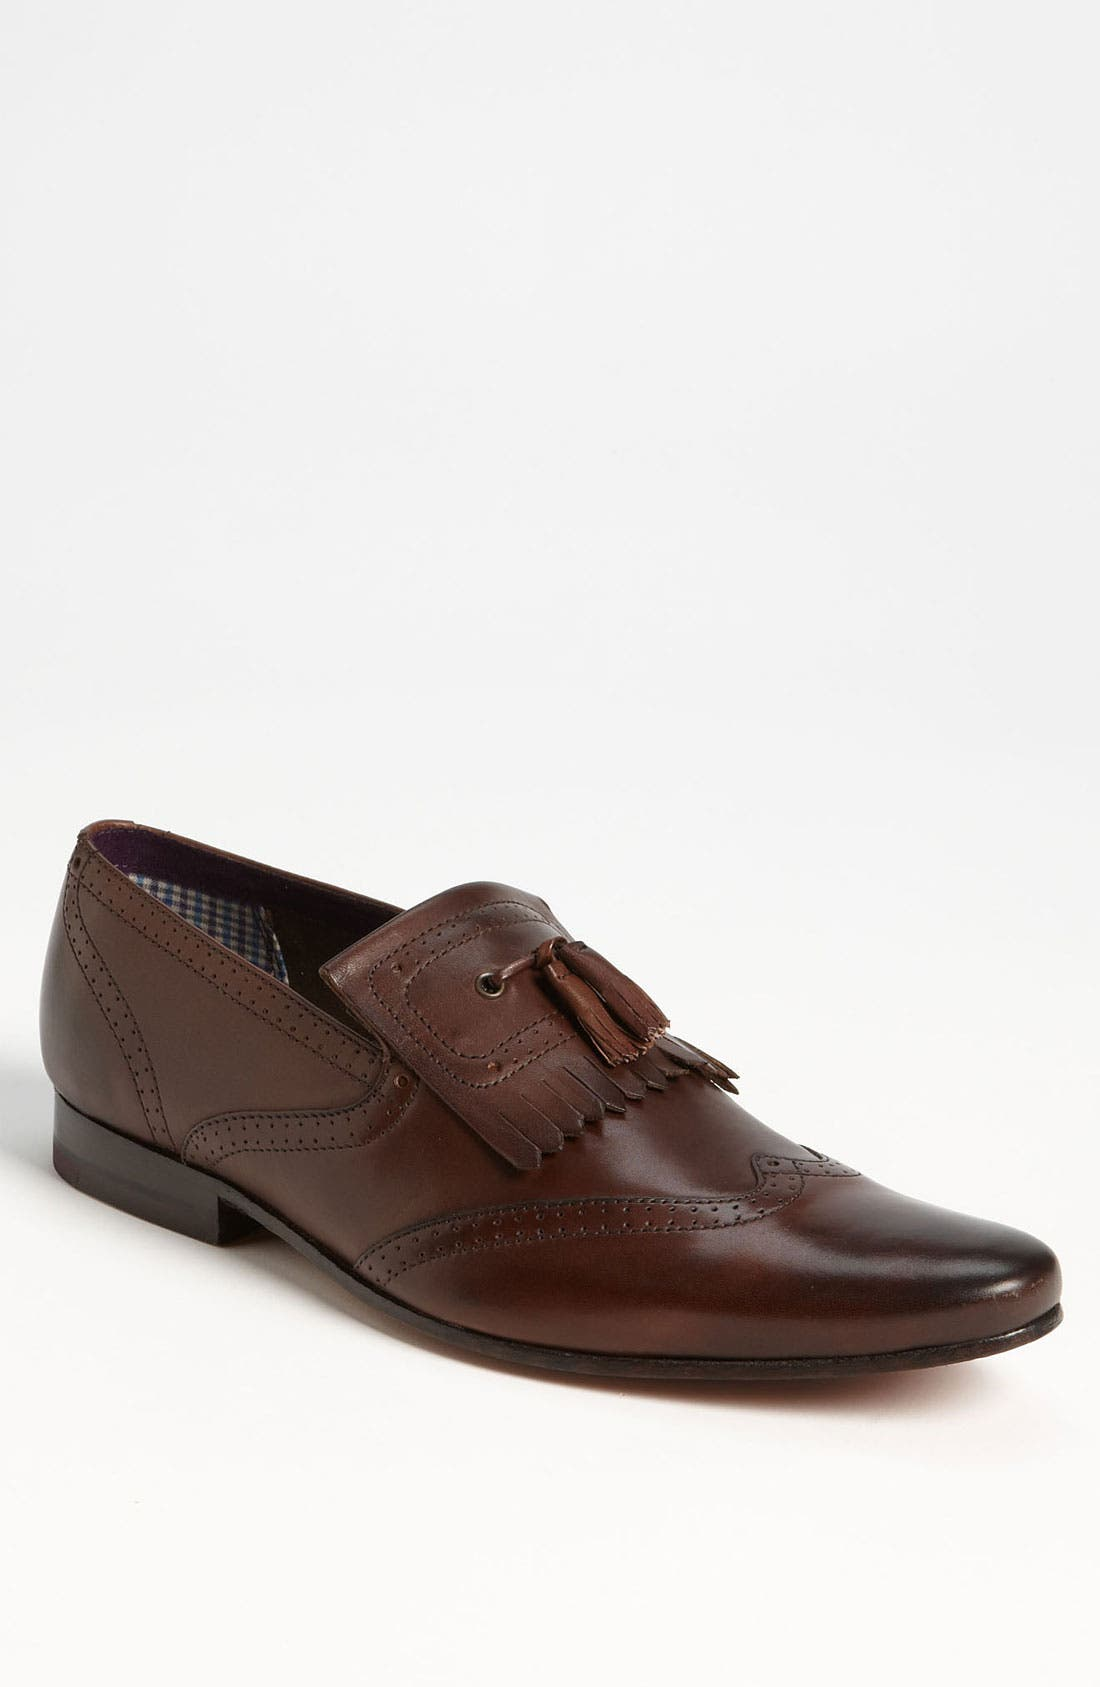 Main Image - Ted Baker London 'Alarias' Kiltie Loafer